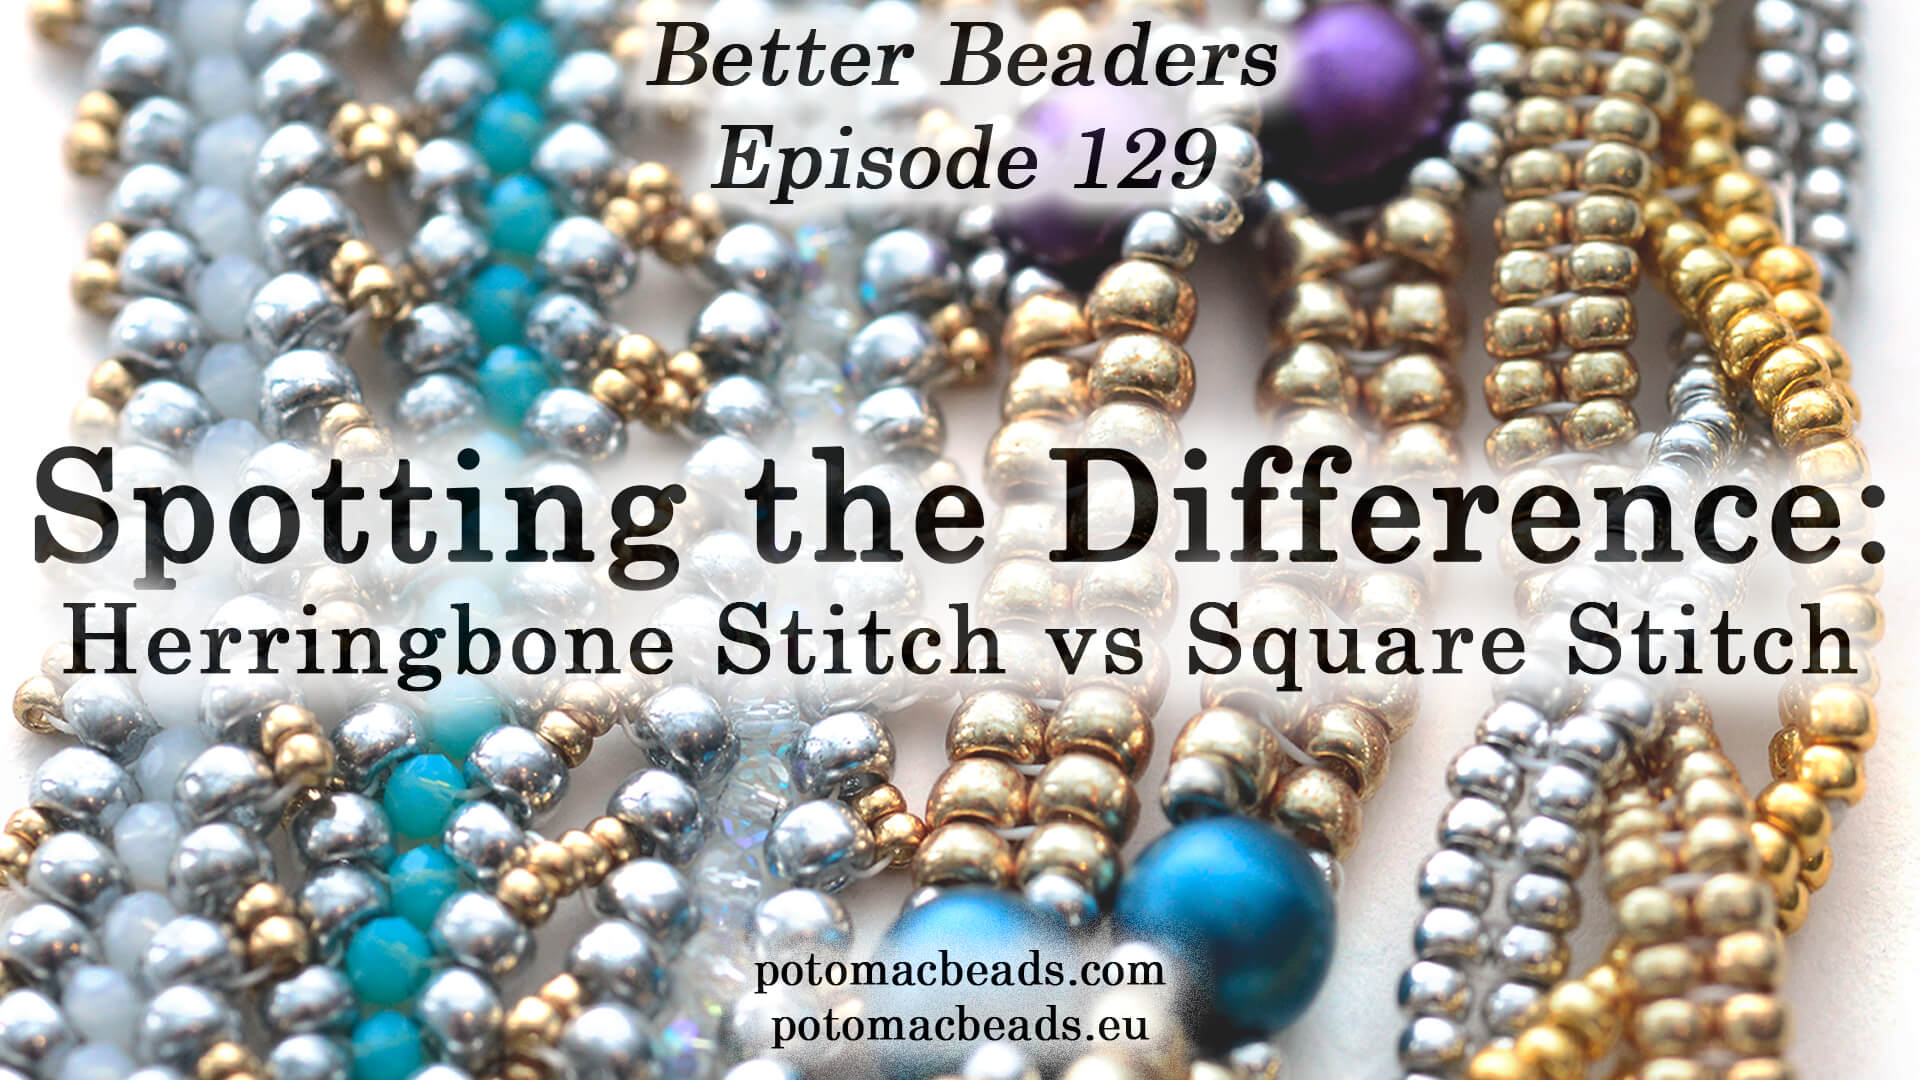 How to Bead Jewelry / Better Beader Episodes / Better Beader Episode 129 - Differences Between Herringbone & Square Stitch